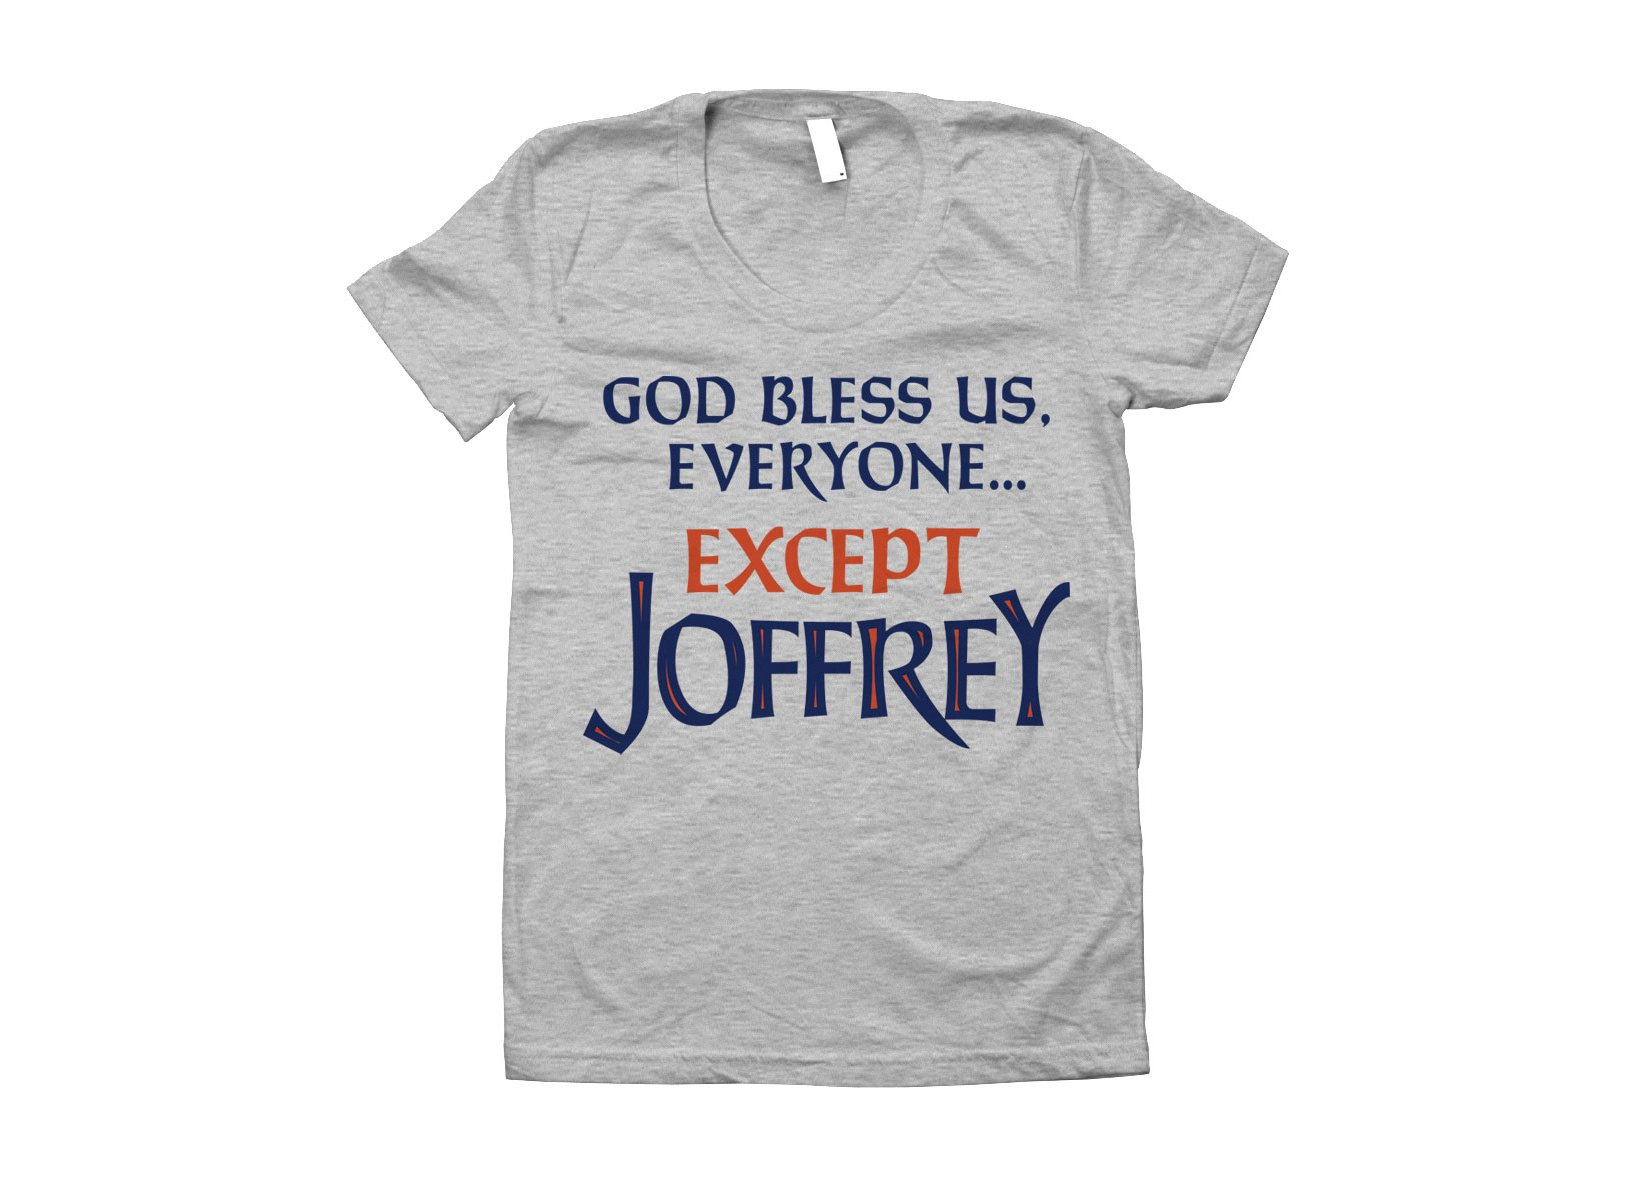 God Bless Us, Everyone. Except Joffrey on Juniors T-Shirt